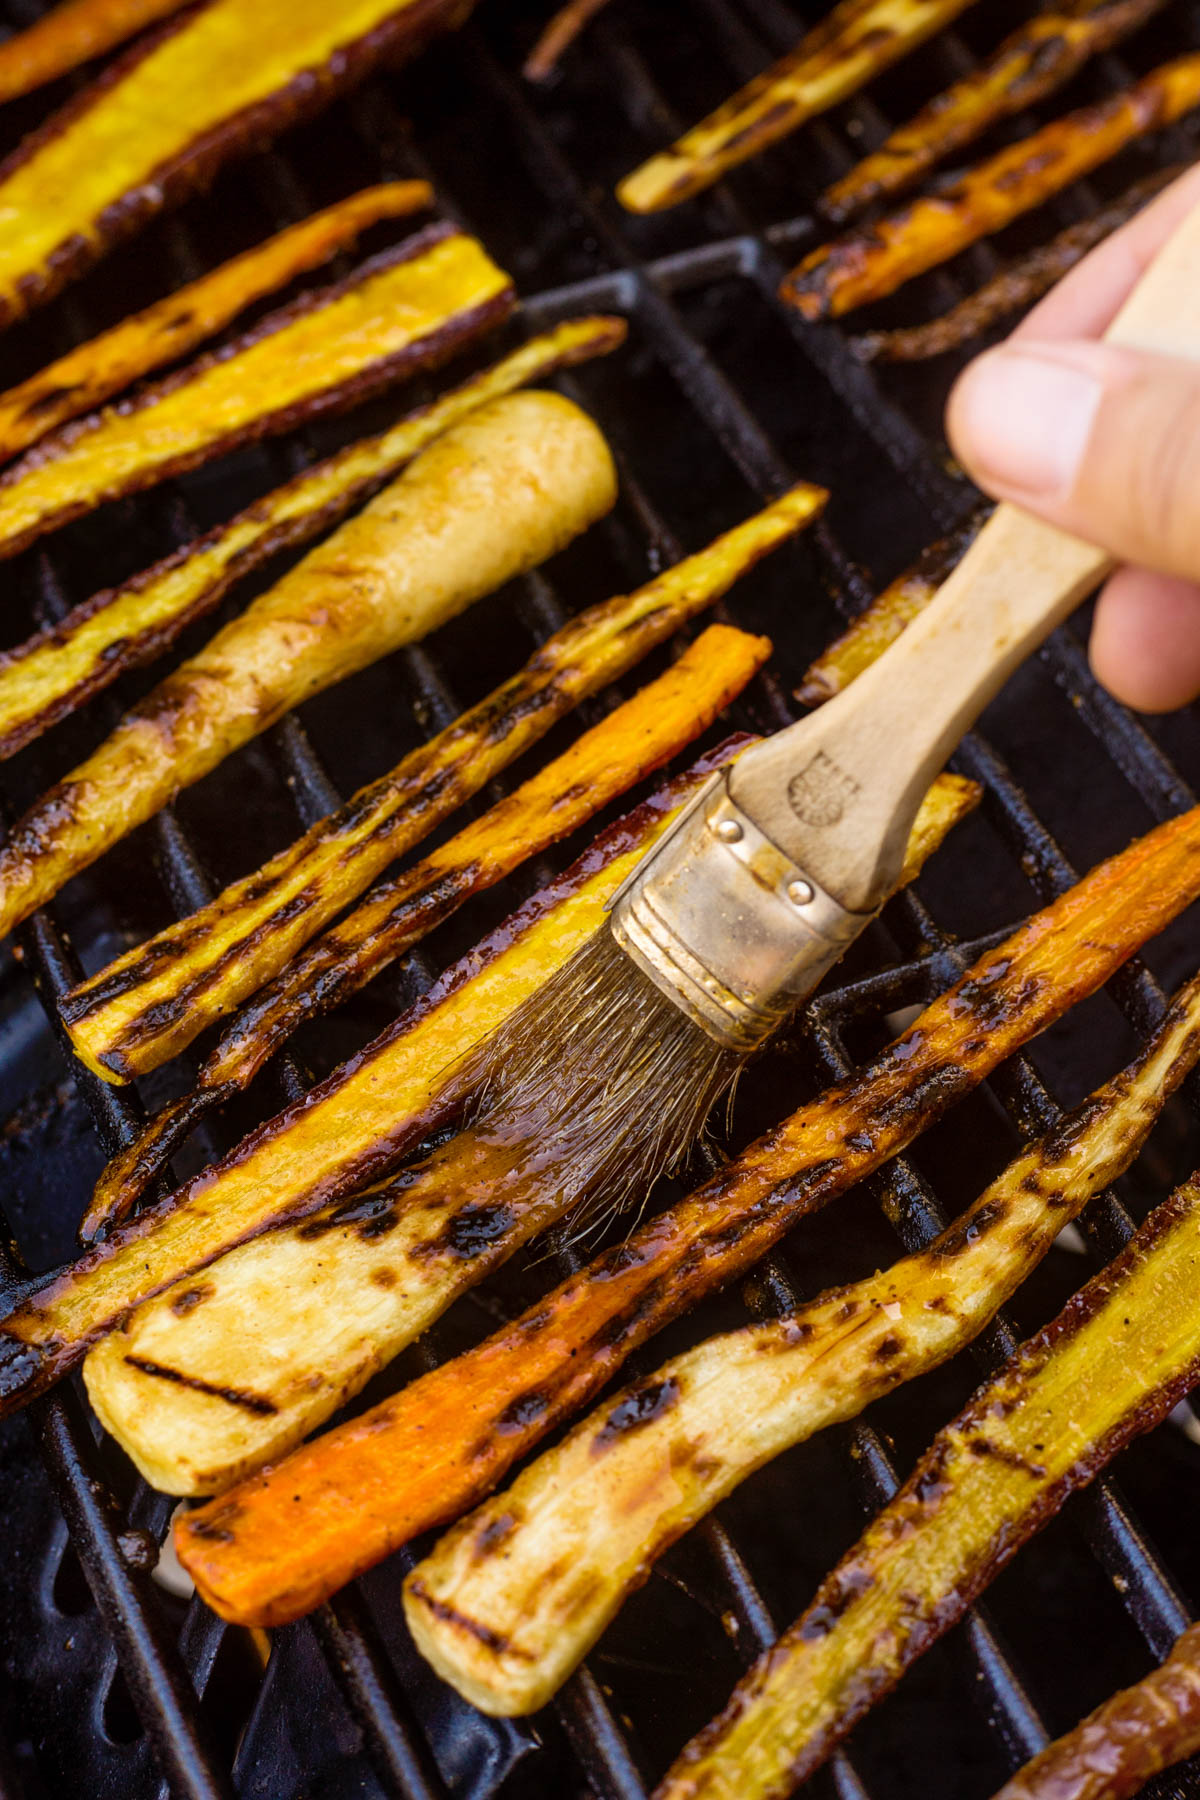 Brushing the harissa glaze on the carrots that are grilling on the BBQ